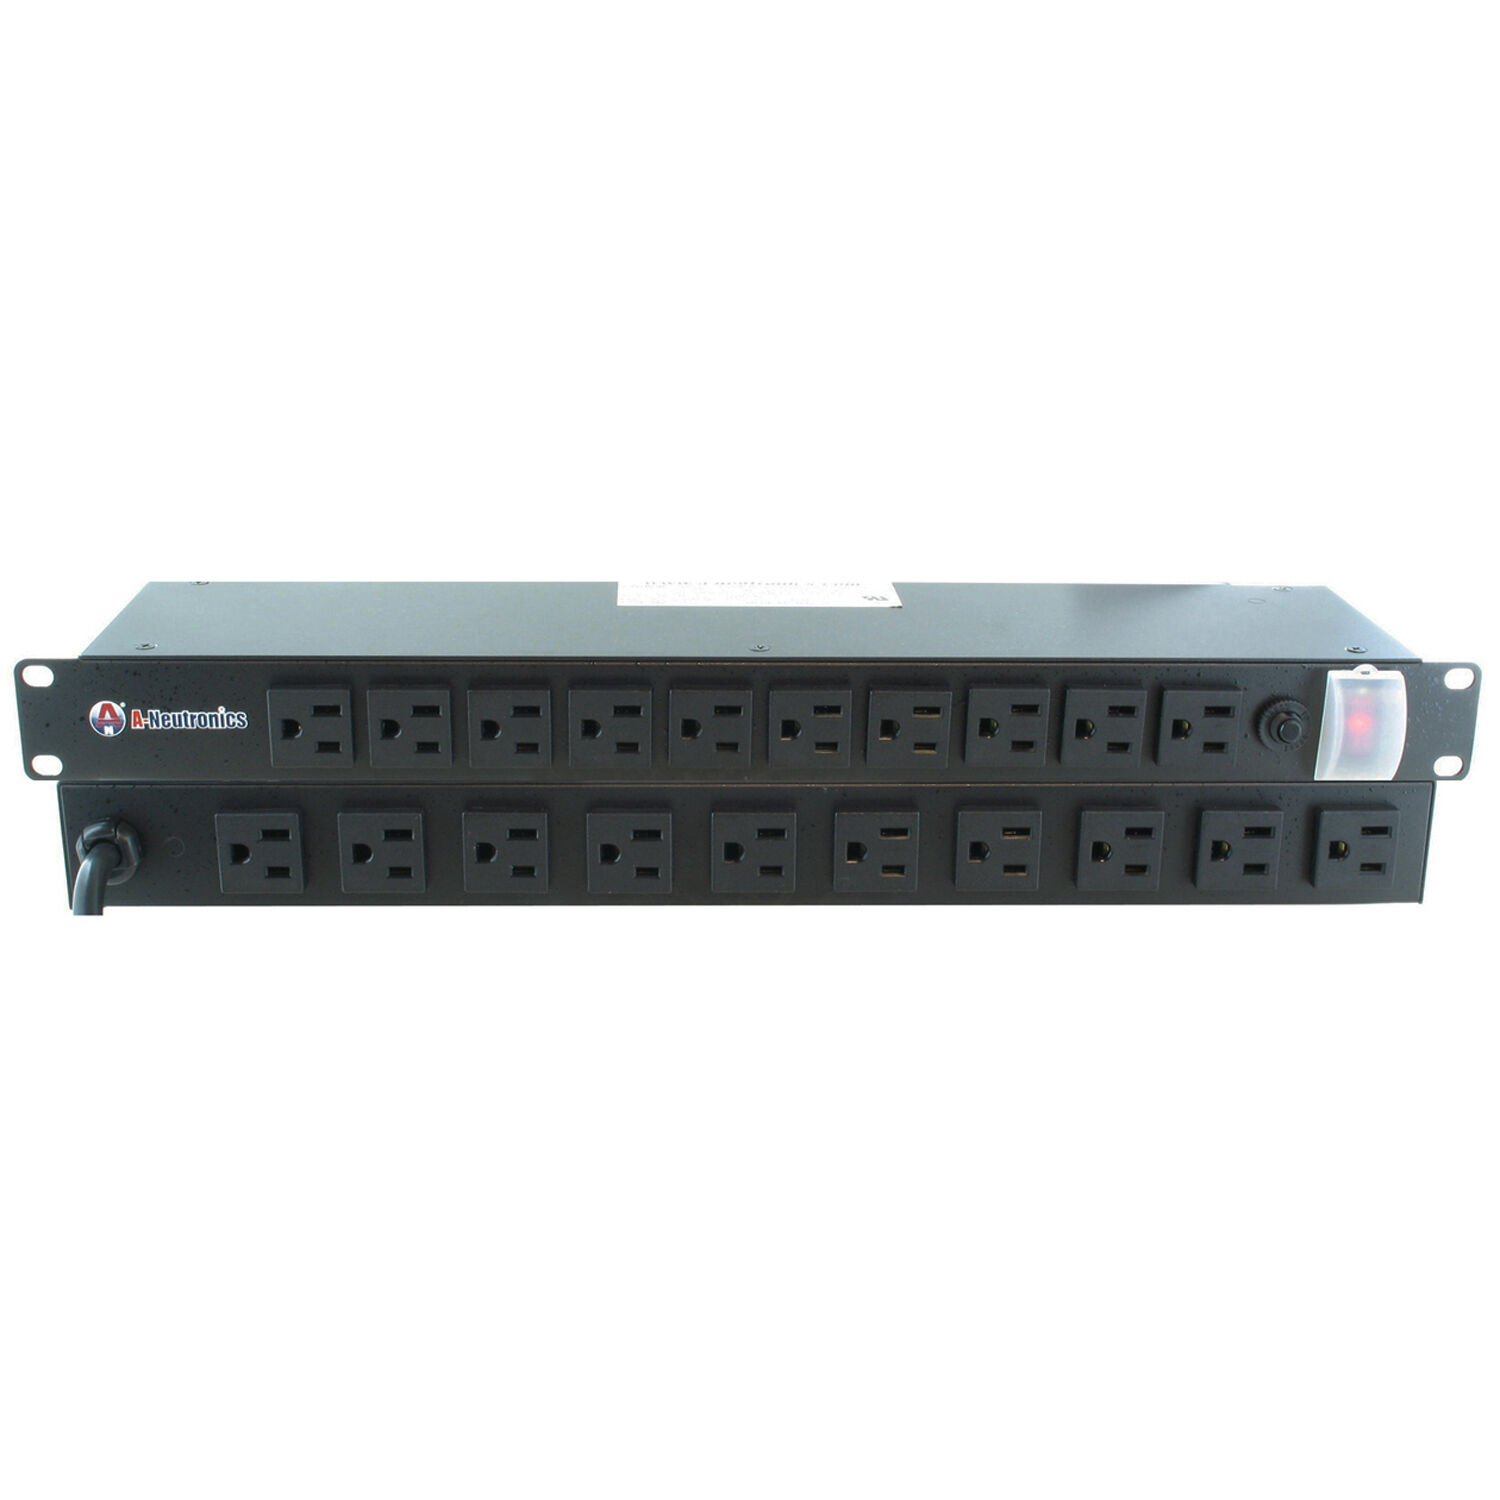 mountable power protectors strip surge mounted rack mount apc protection ethernet protector lightning monster